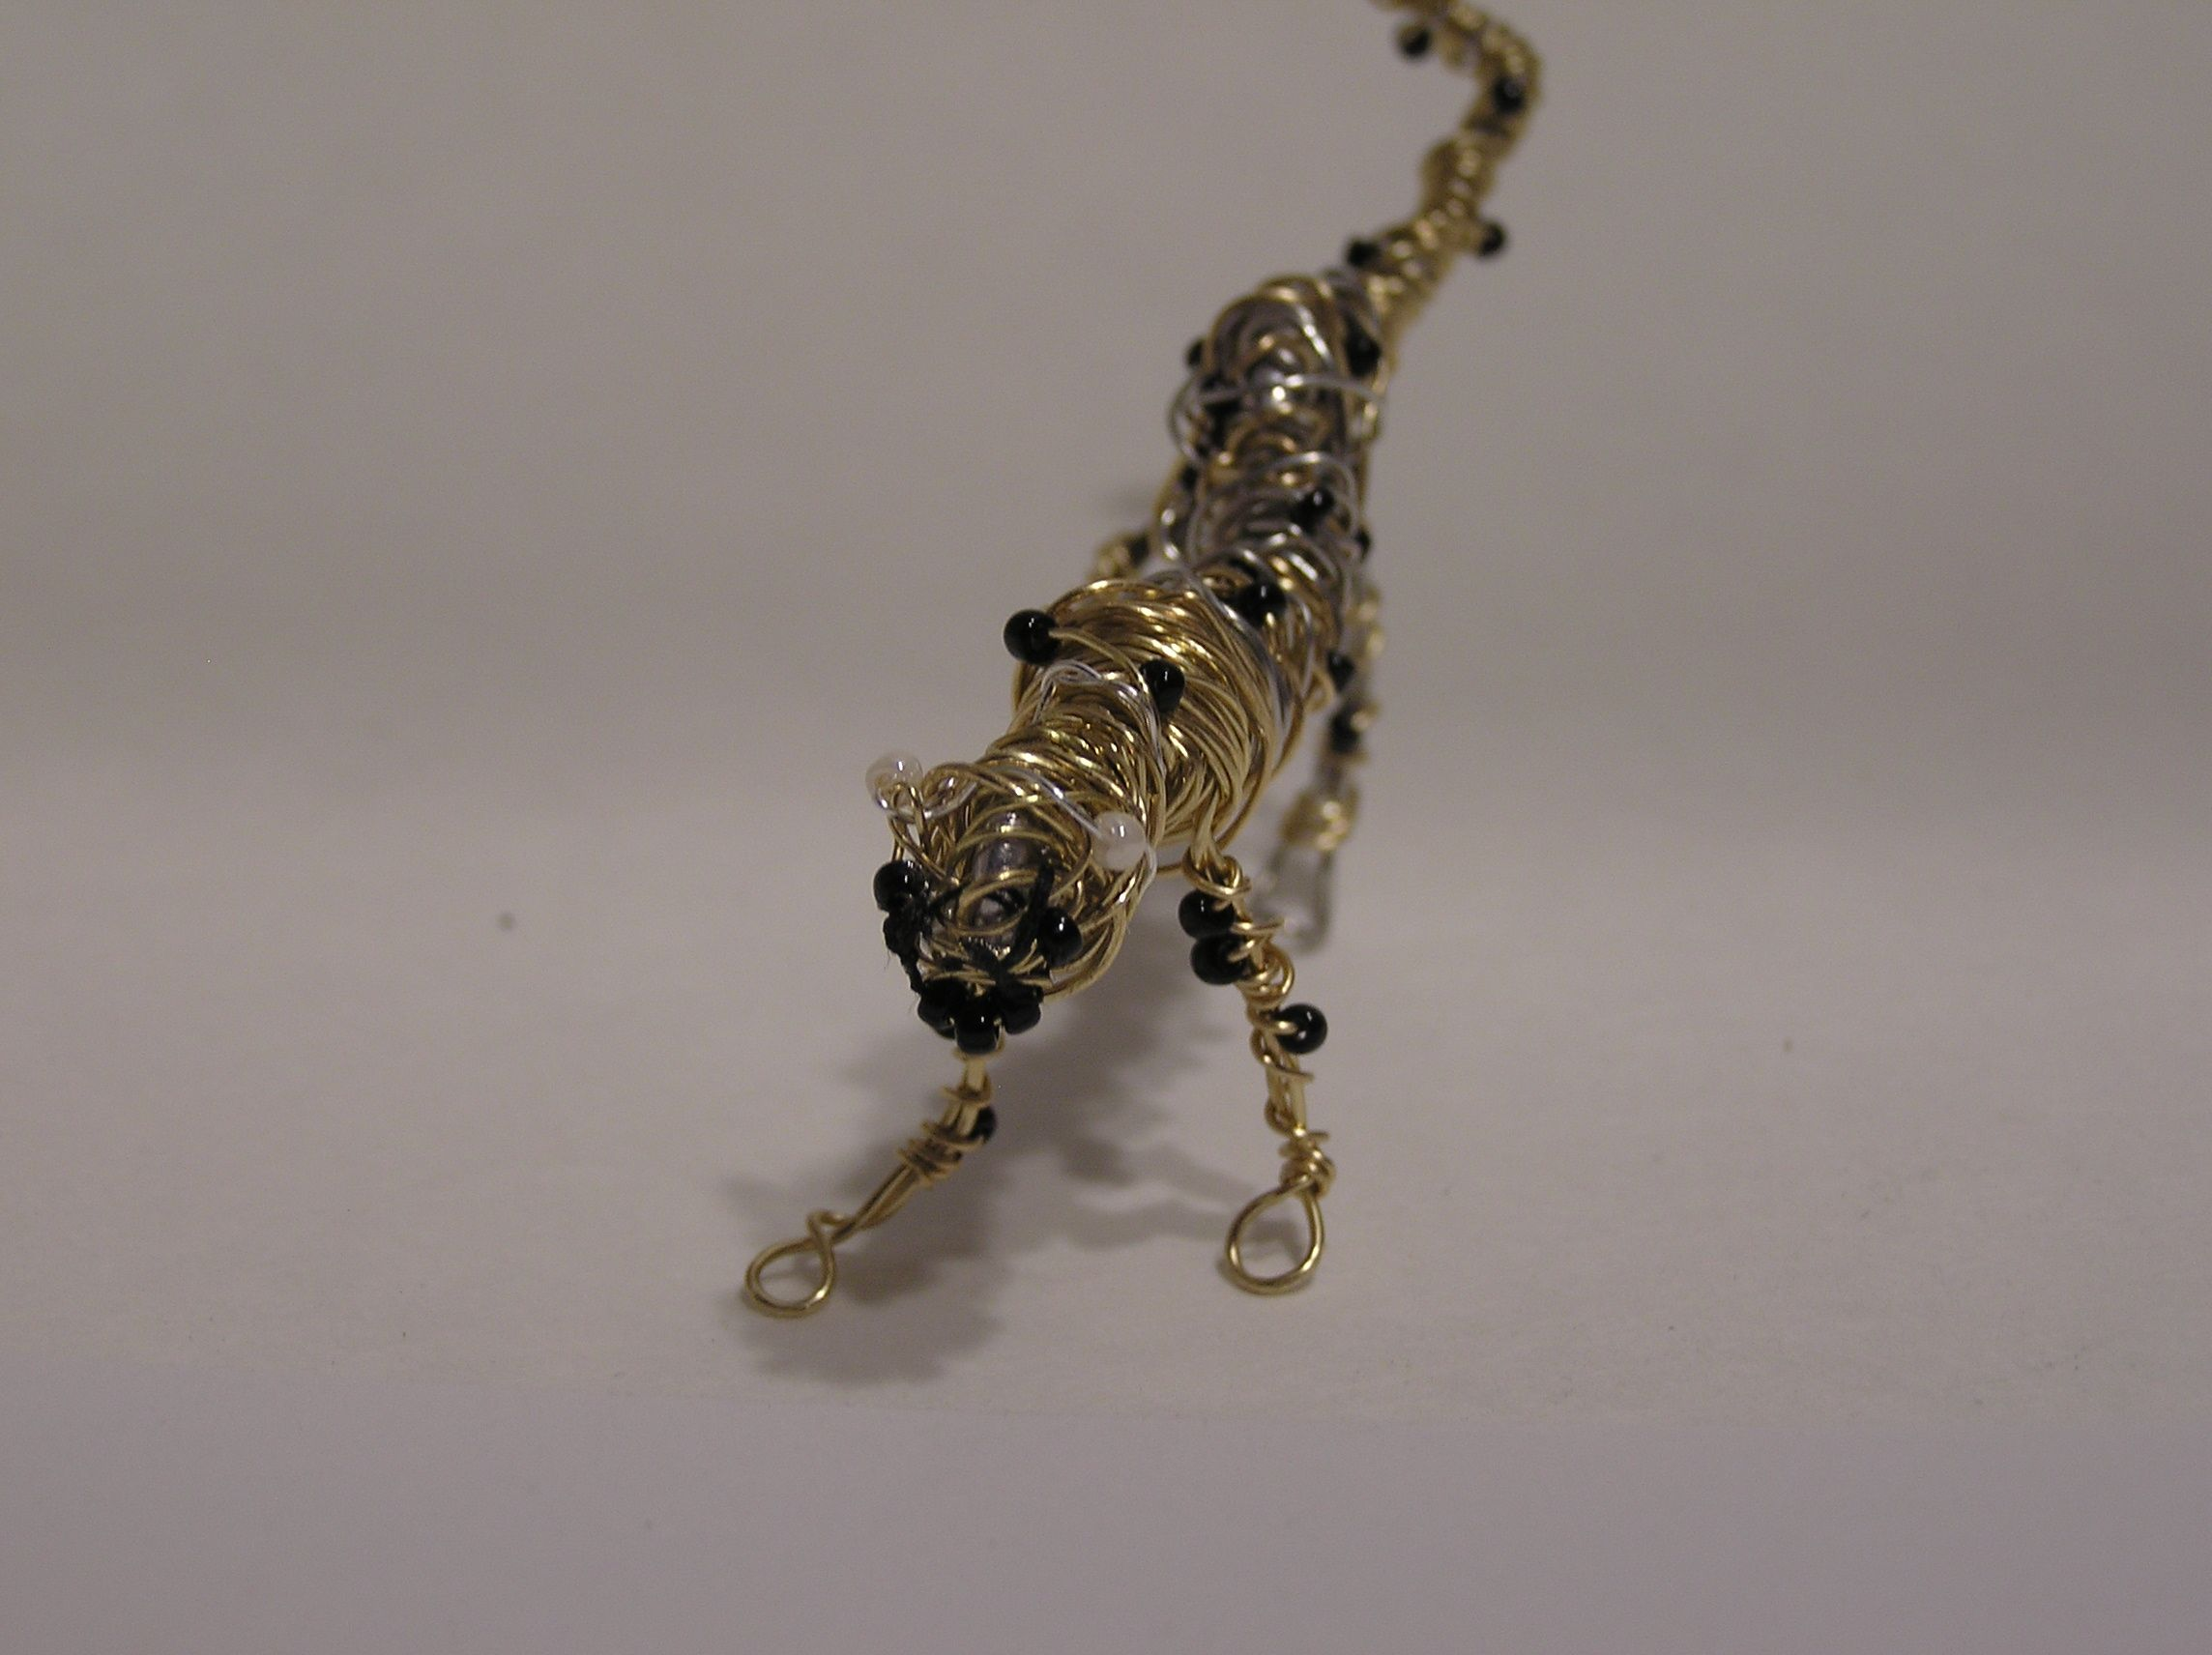 Emerson's Cheetah...mini wire sculpture by Phaedra of Lambzy Divey